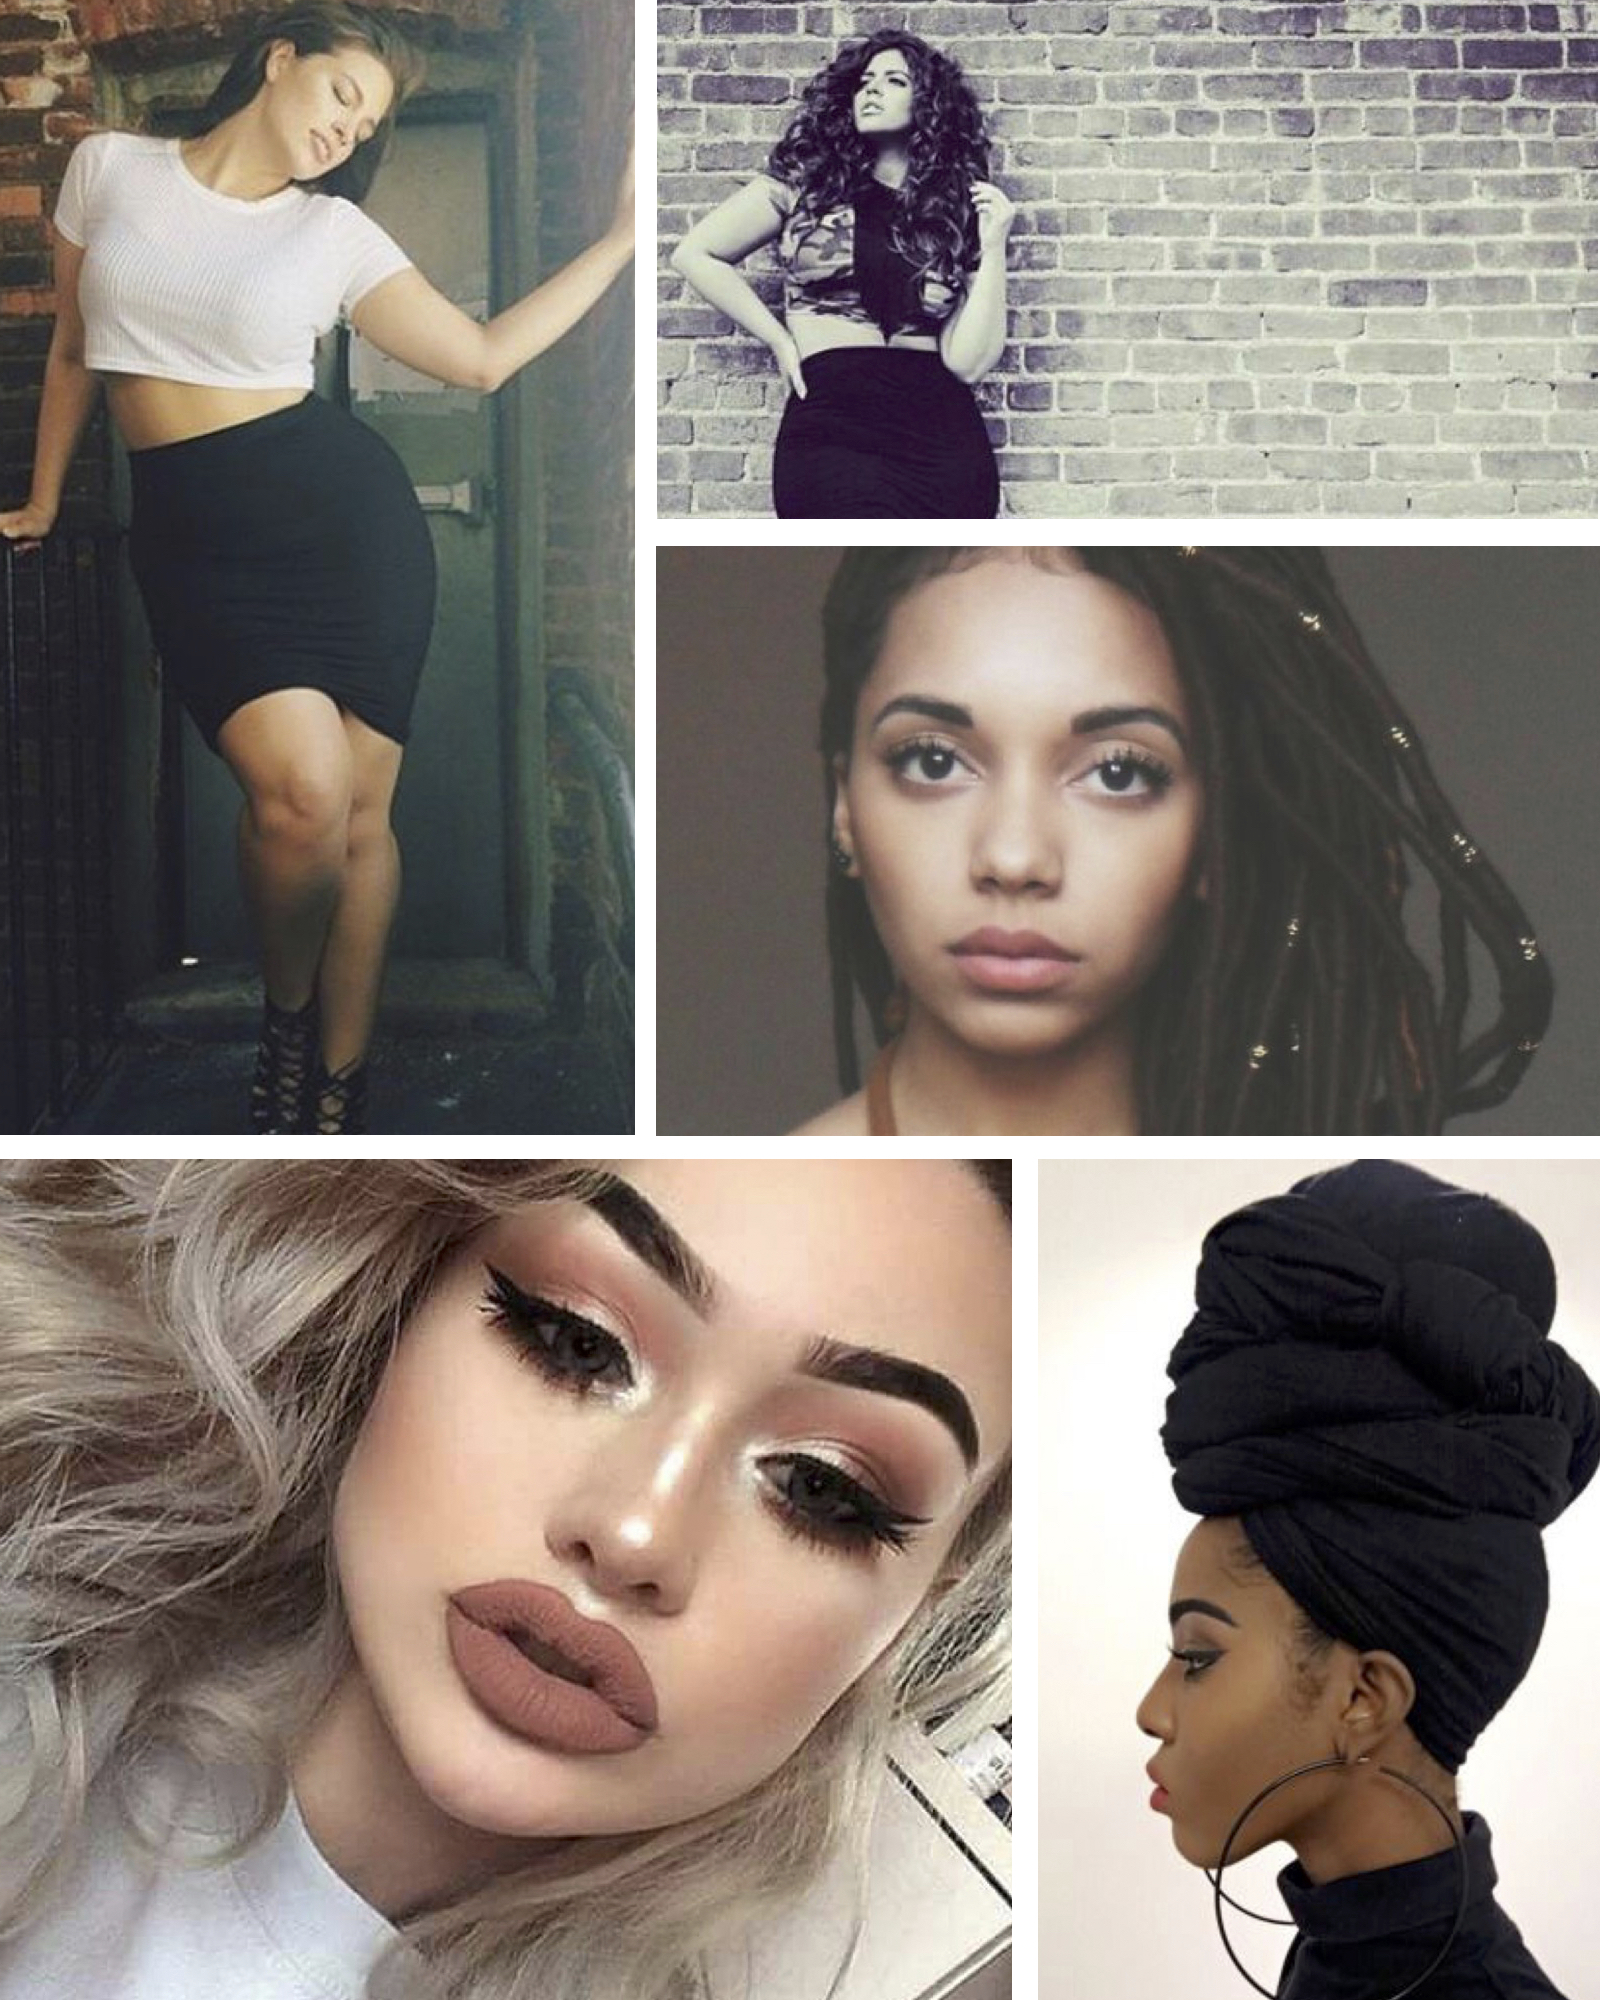 Mood board inspiration for blogger  Ta'lor Pinkston . Images pulled from Pinterest.